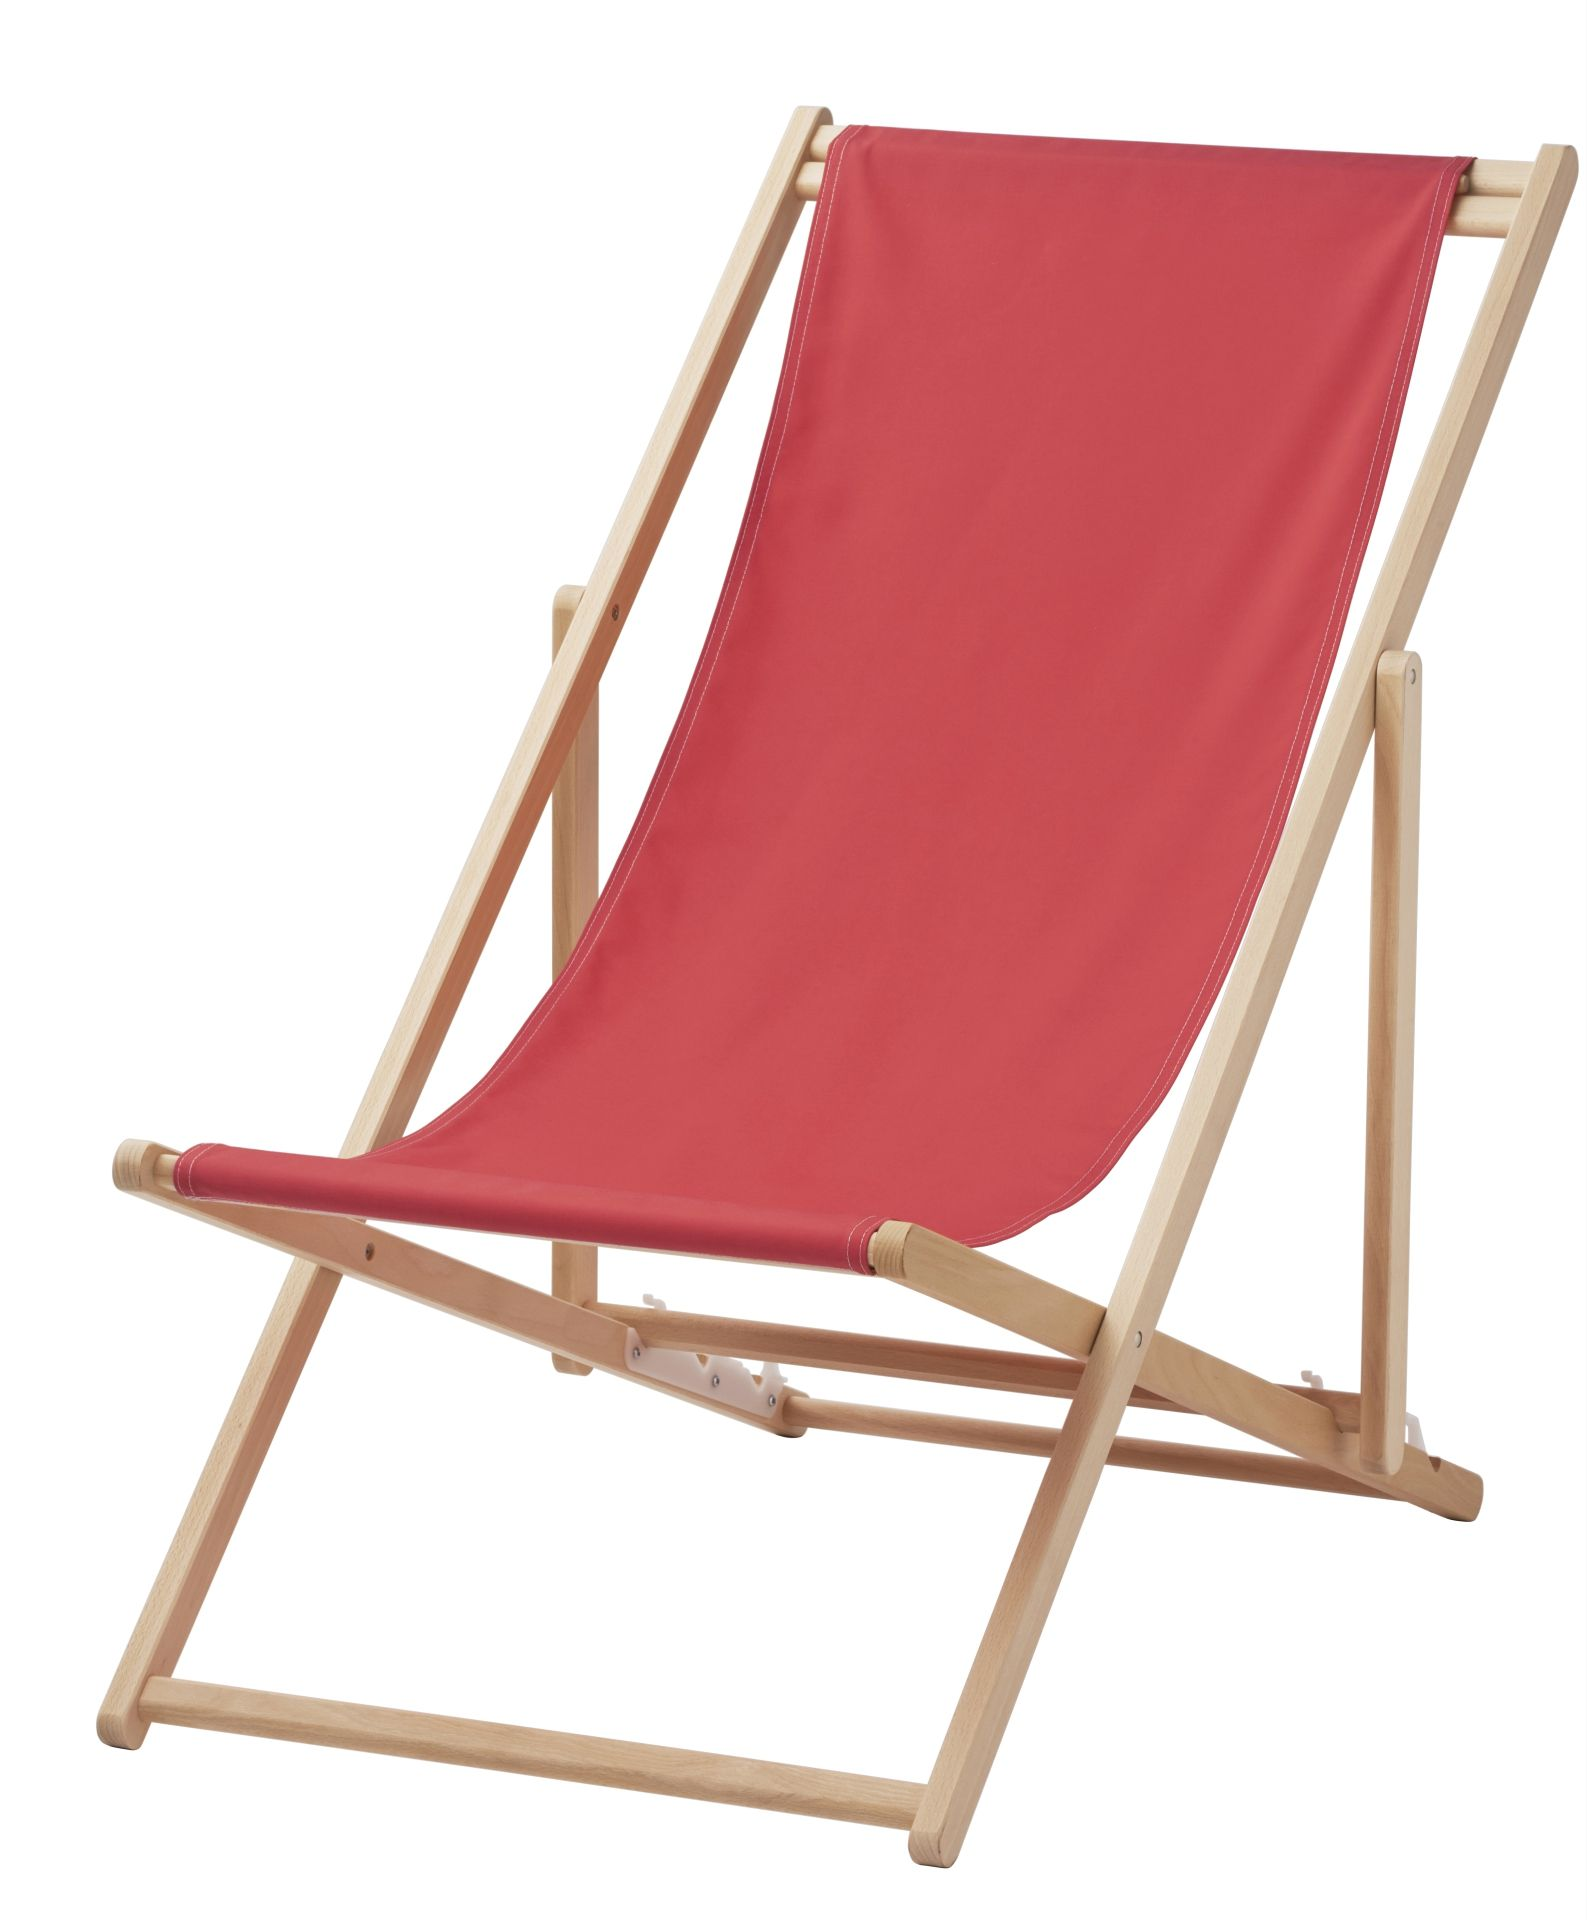 Chaise De Plage Pliante Ikea Found On Google From Cpsc Gov Pink Roses Pinterest Chaise De